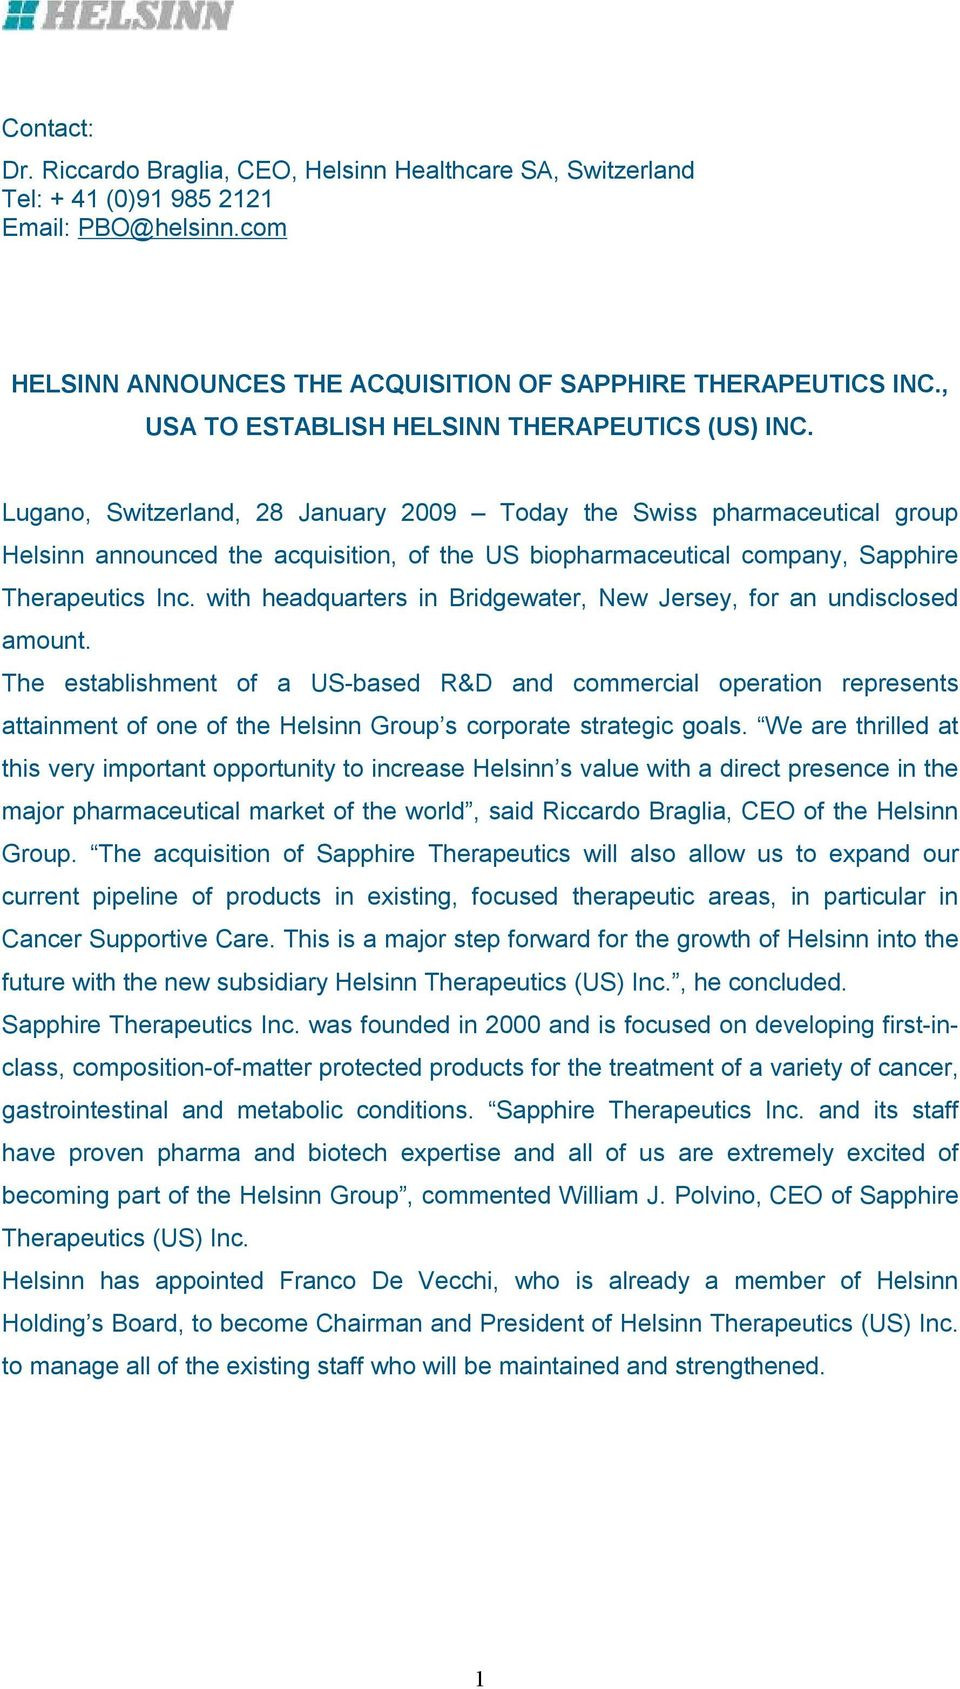 Lugano, Switzerland, 28 January 2009 Today the Swiss pharmaceutical group Helsinn announced the acquisition, of the US biopharmaceutical company, Sapphire Therapeutics Inc.